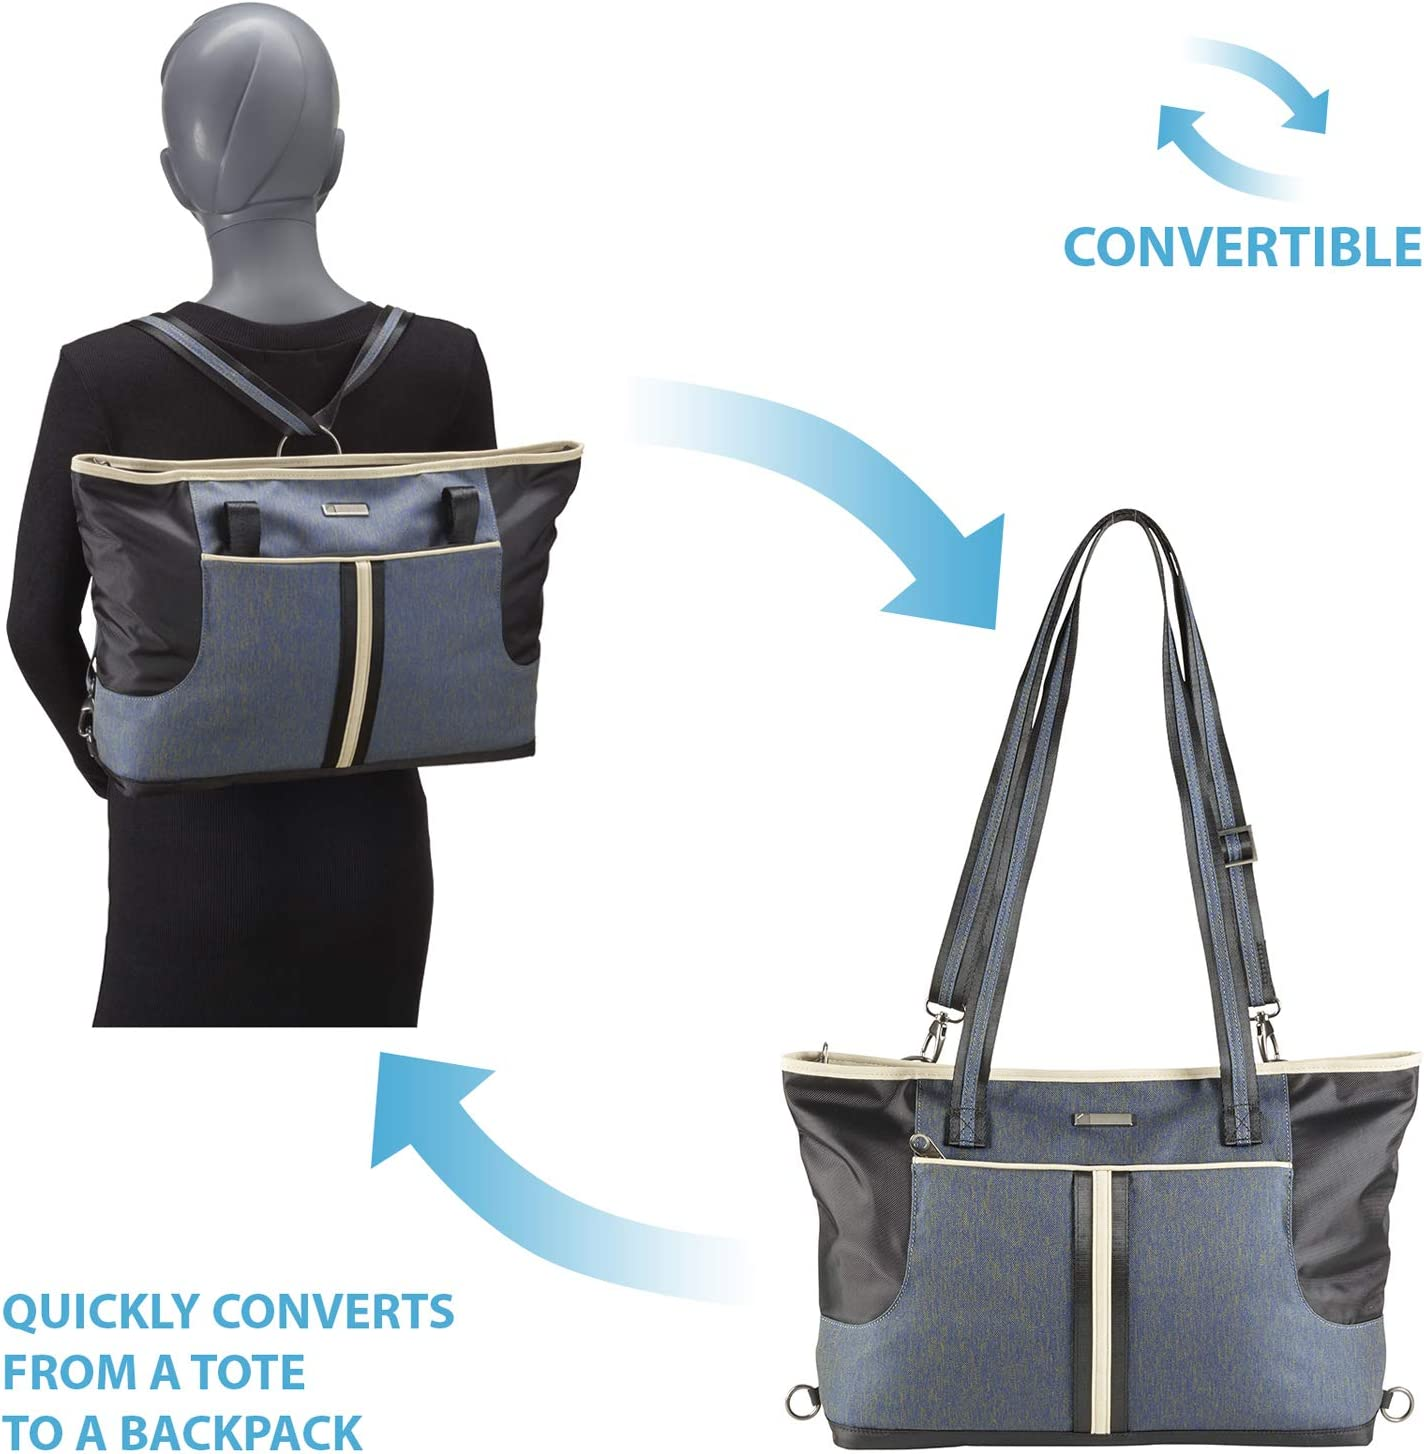 Anti-Theft Slash Resistant Material /& Locking Zippers Secura Destinations 2-In-1 Convertible BackPack Laptop Bag Tote for Travel or Work with RFID Blocking Card Slots